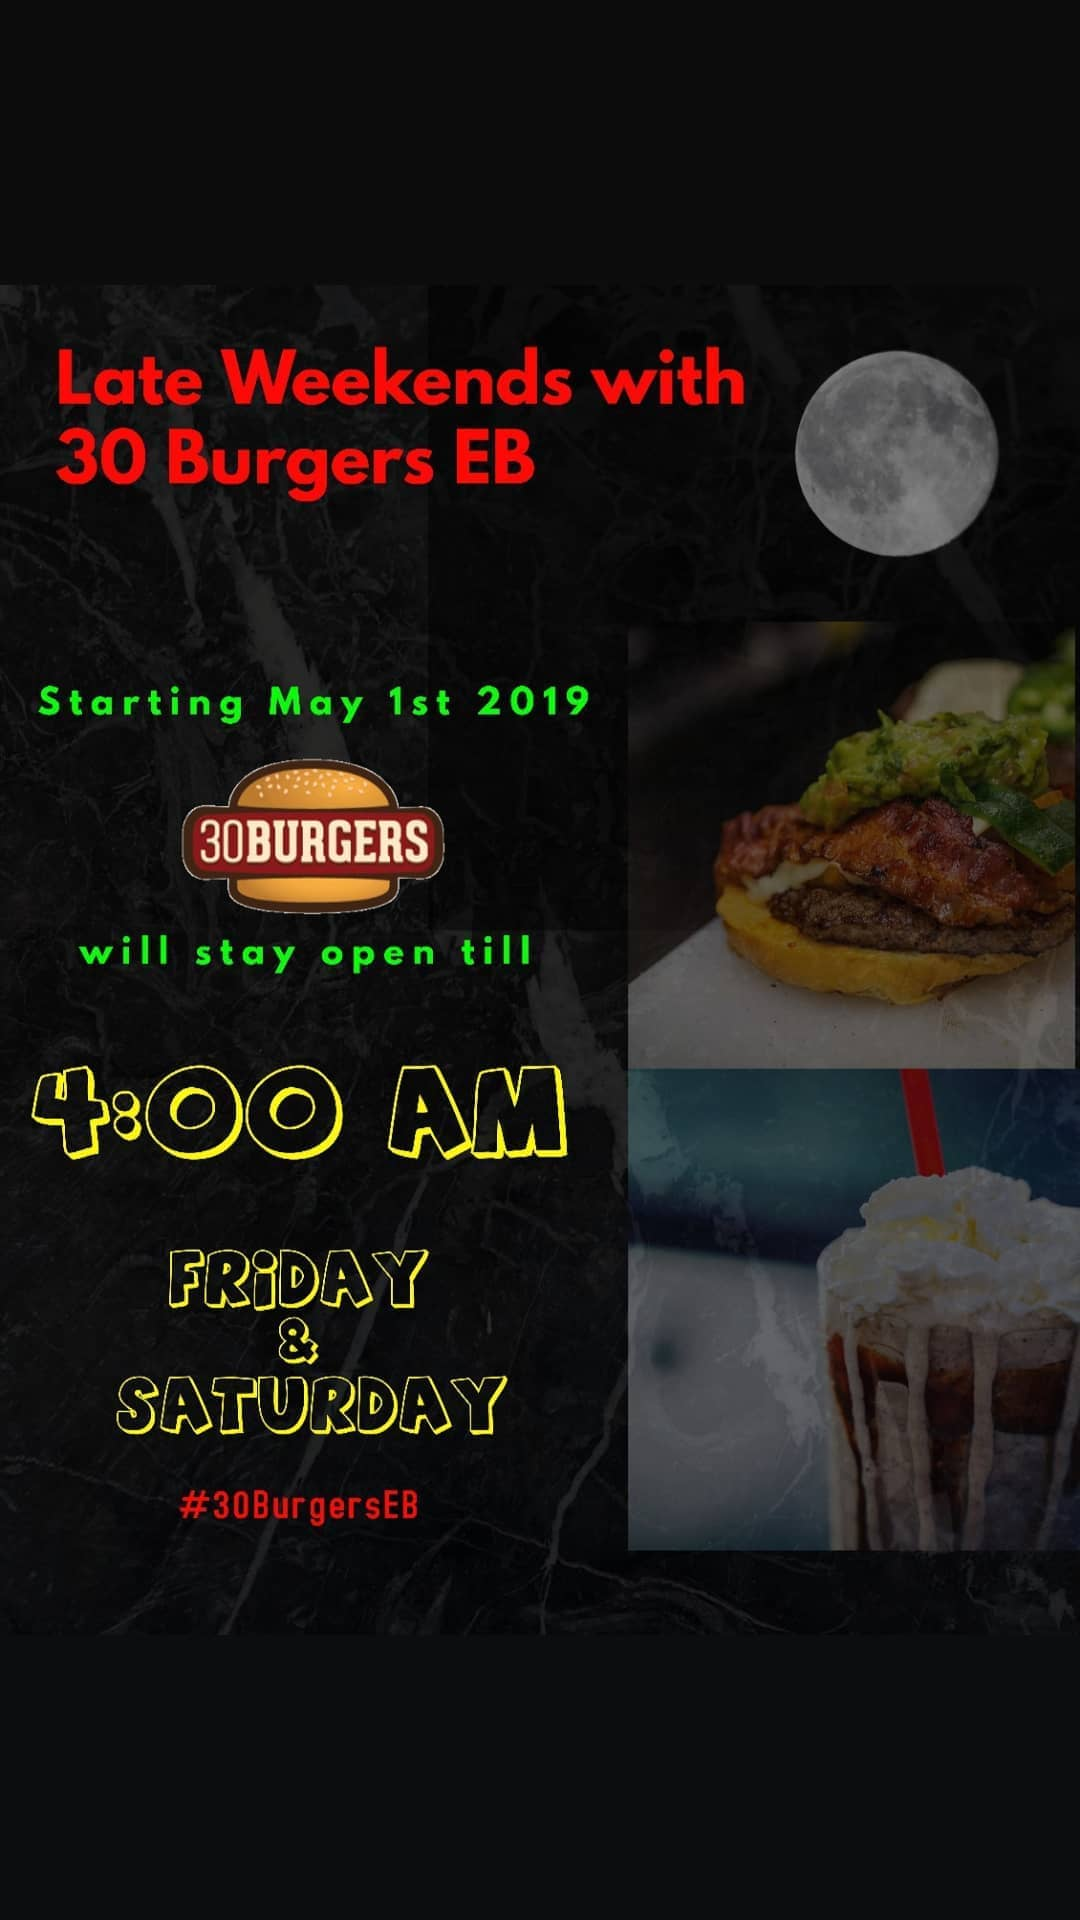 30 Burgers in East Brunswick, NJ - Zabihah - Find halal